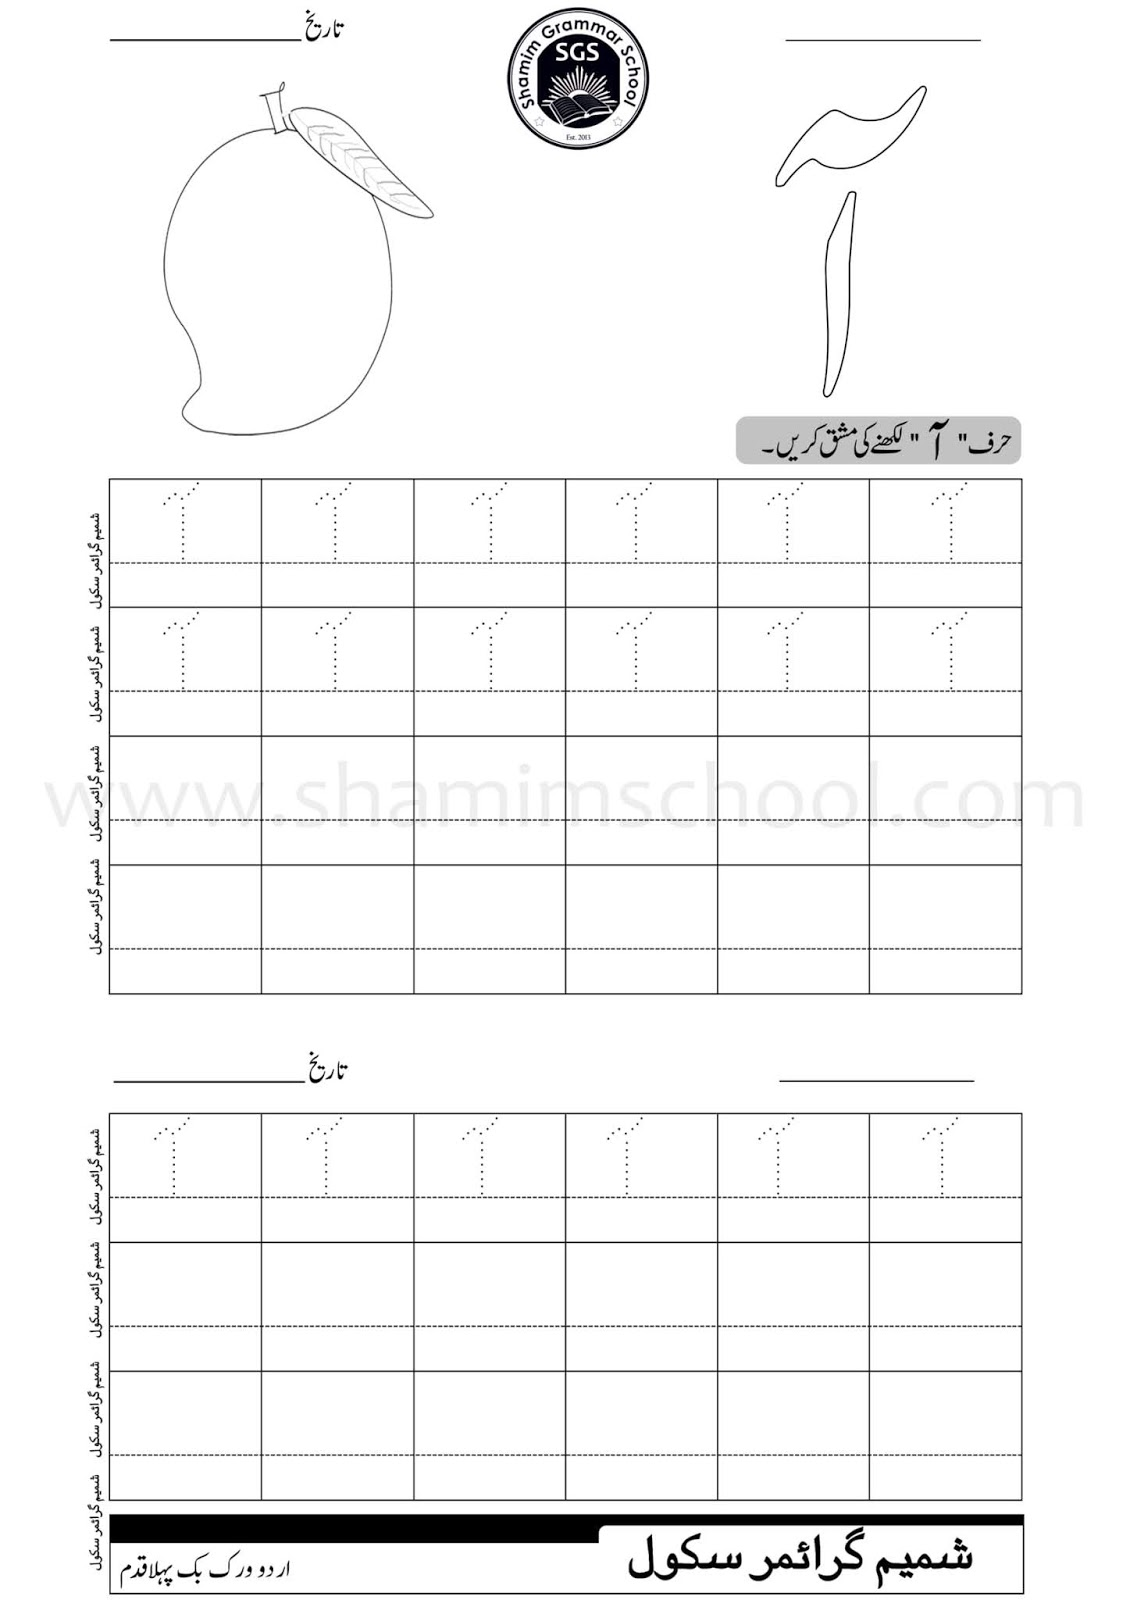 WORK SHEETS FOR PRE STANDARDS MATH,ENGLISH,SCIENCE,URDU | IT ...